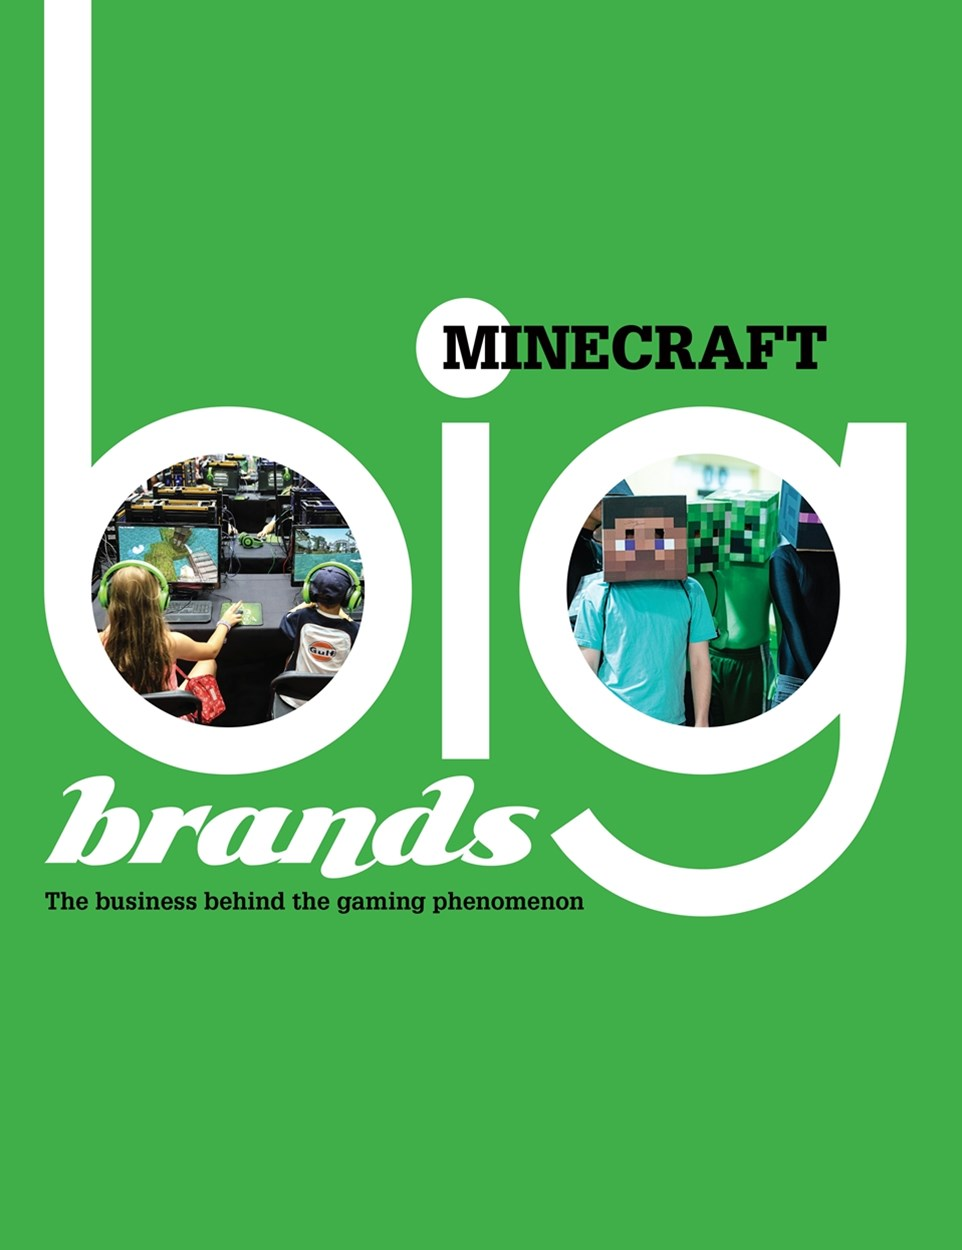 Big Brands: Minecraft